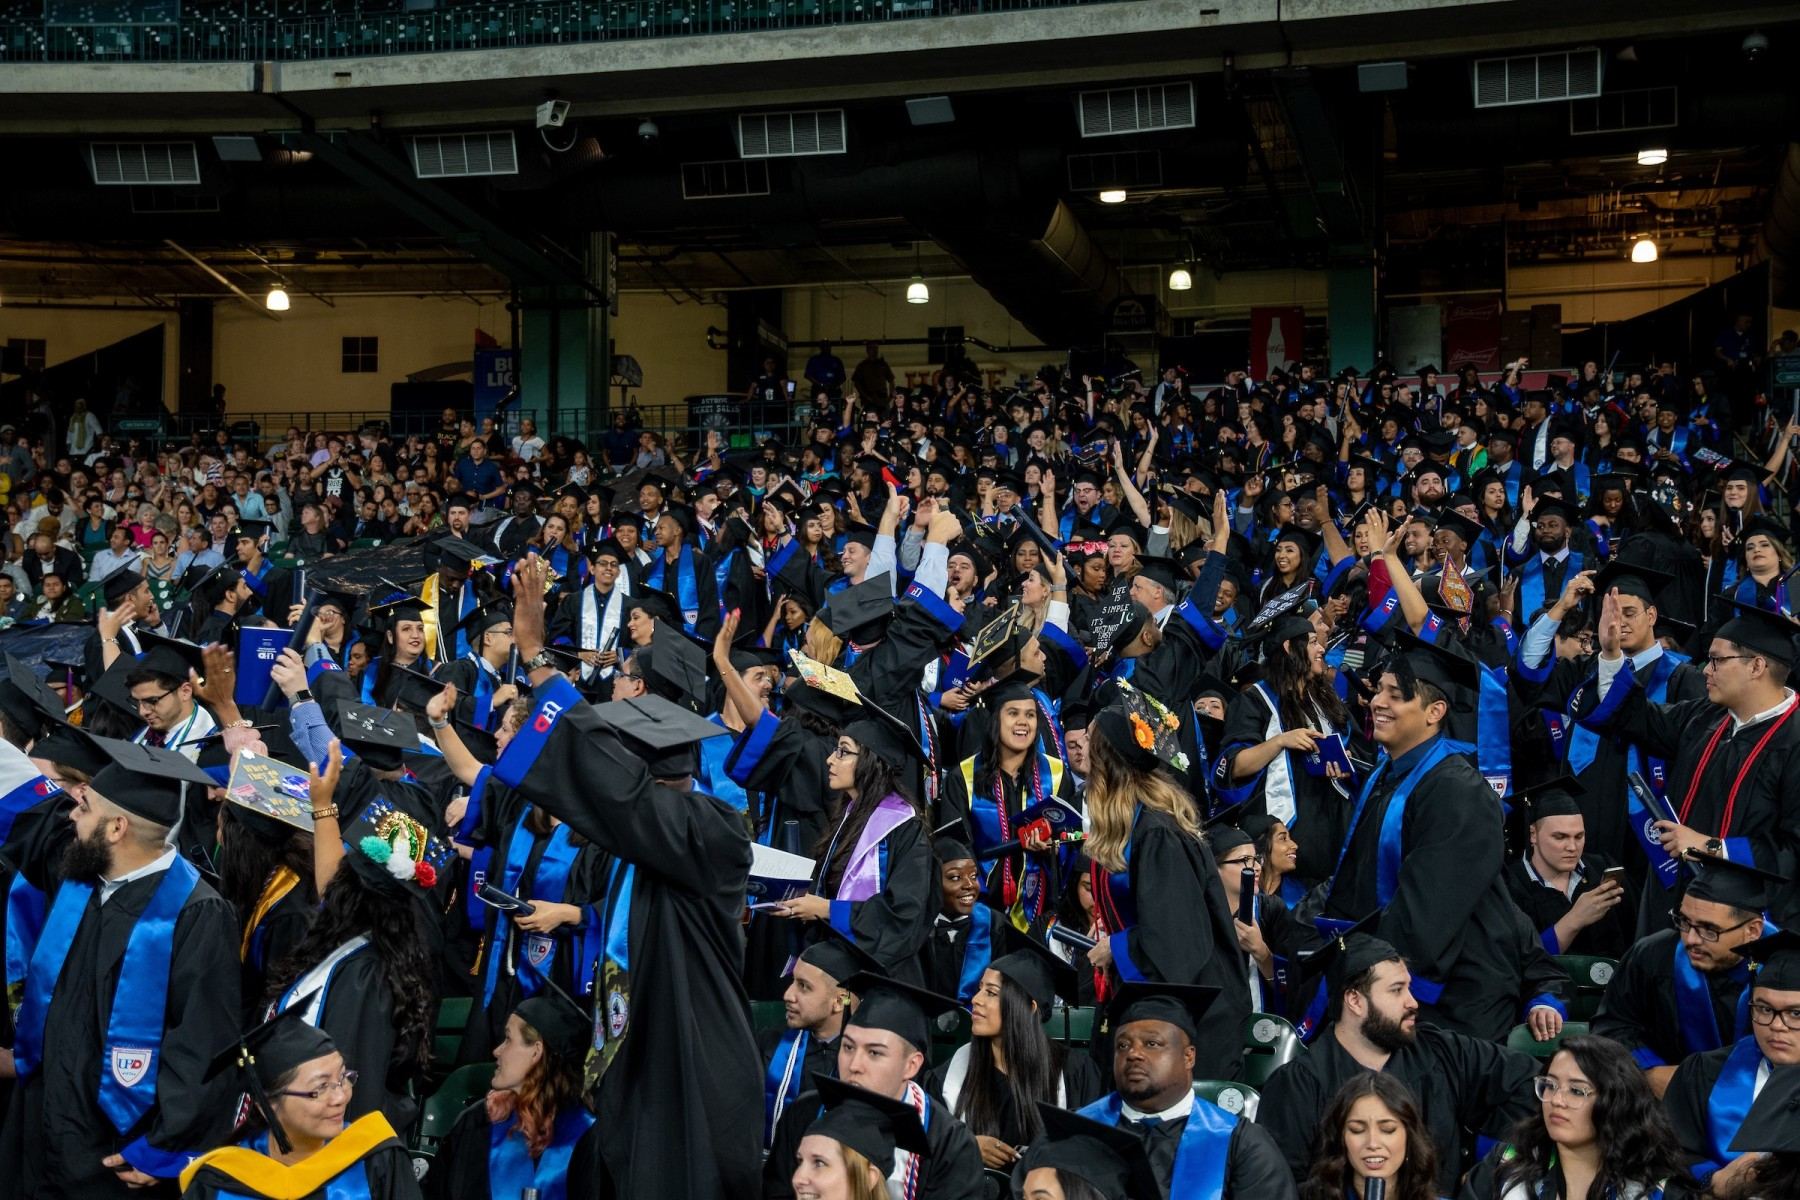 Graduates will have plenty to celebrate at UHD's 67th Commencement.